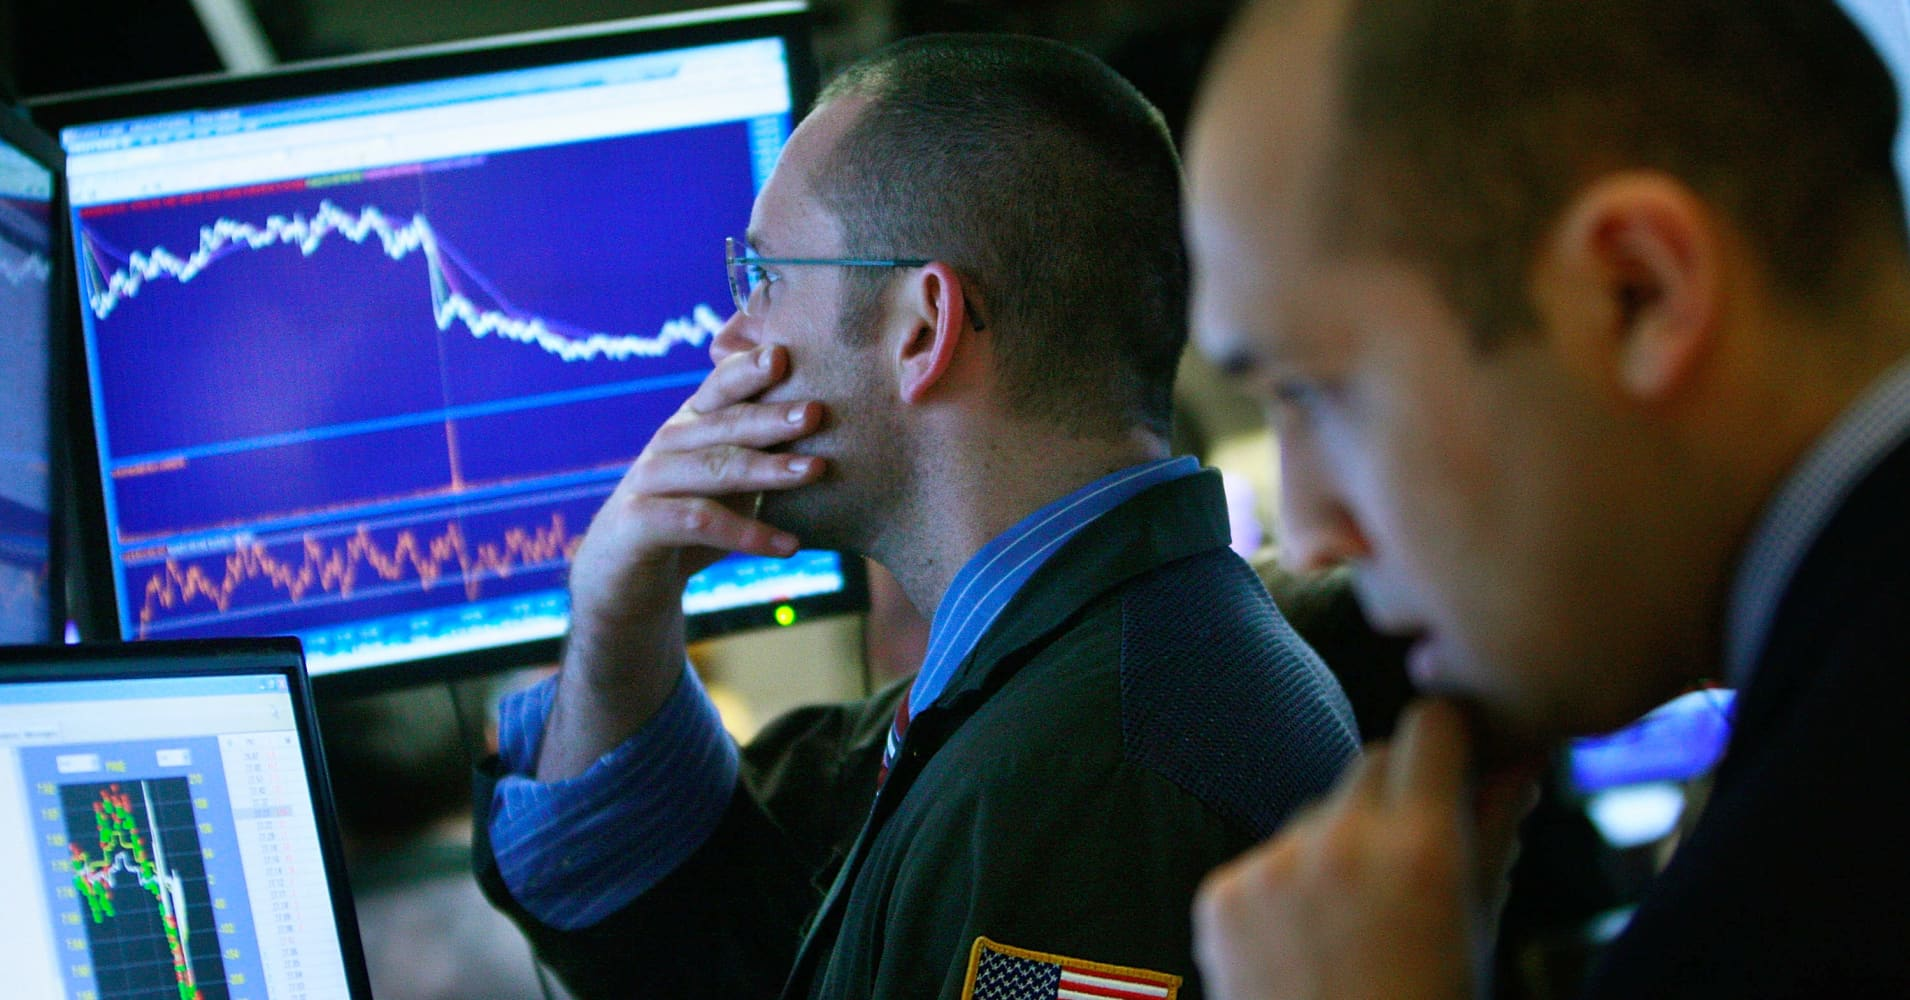 US heading for recession after 2 years of unsustainable growth, economist says